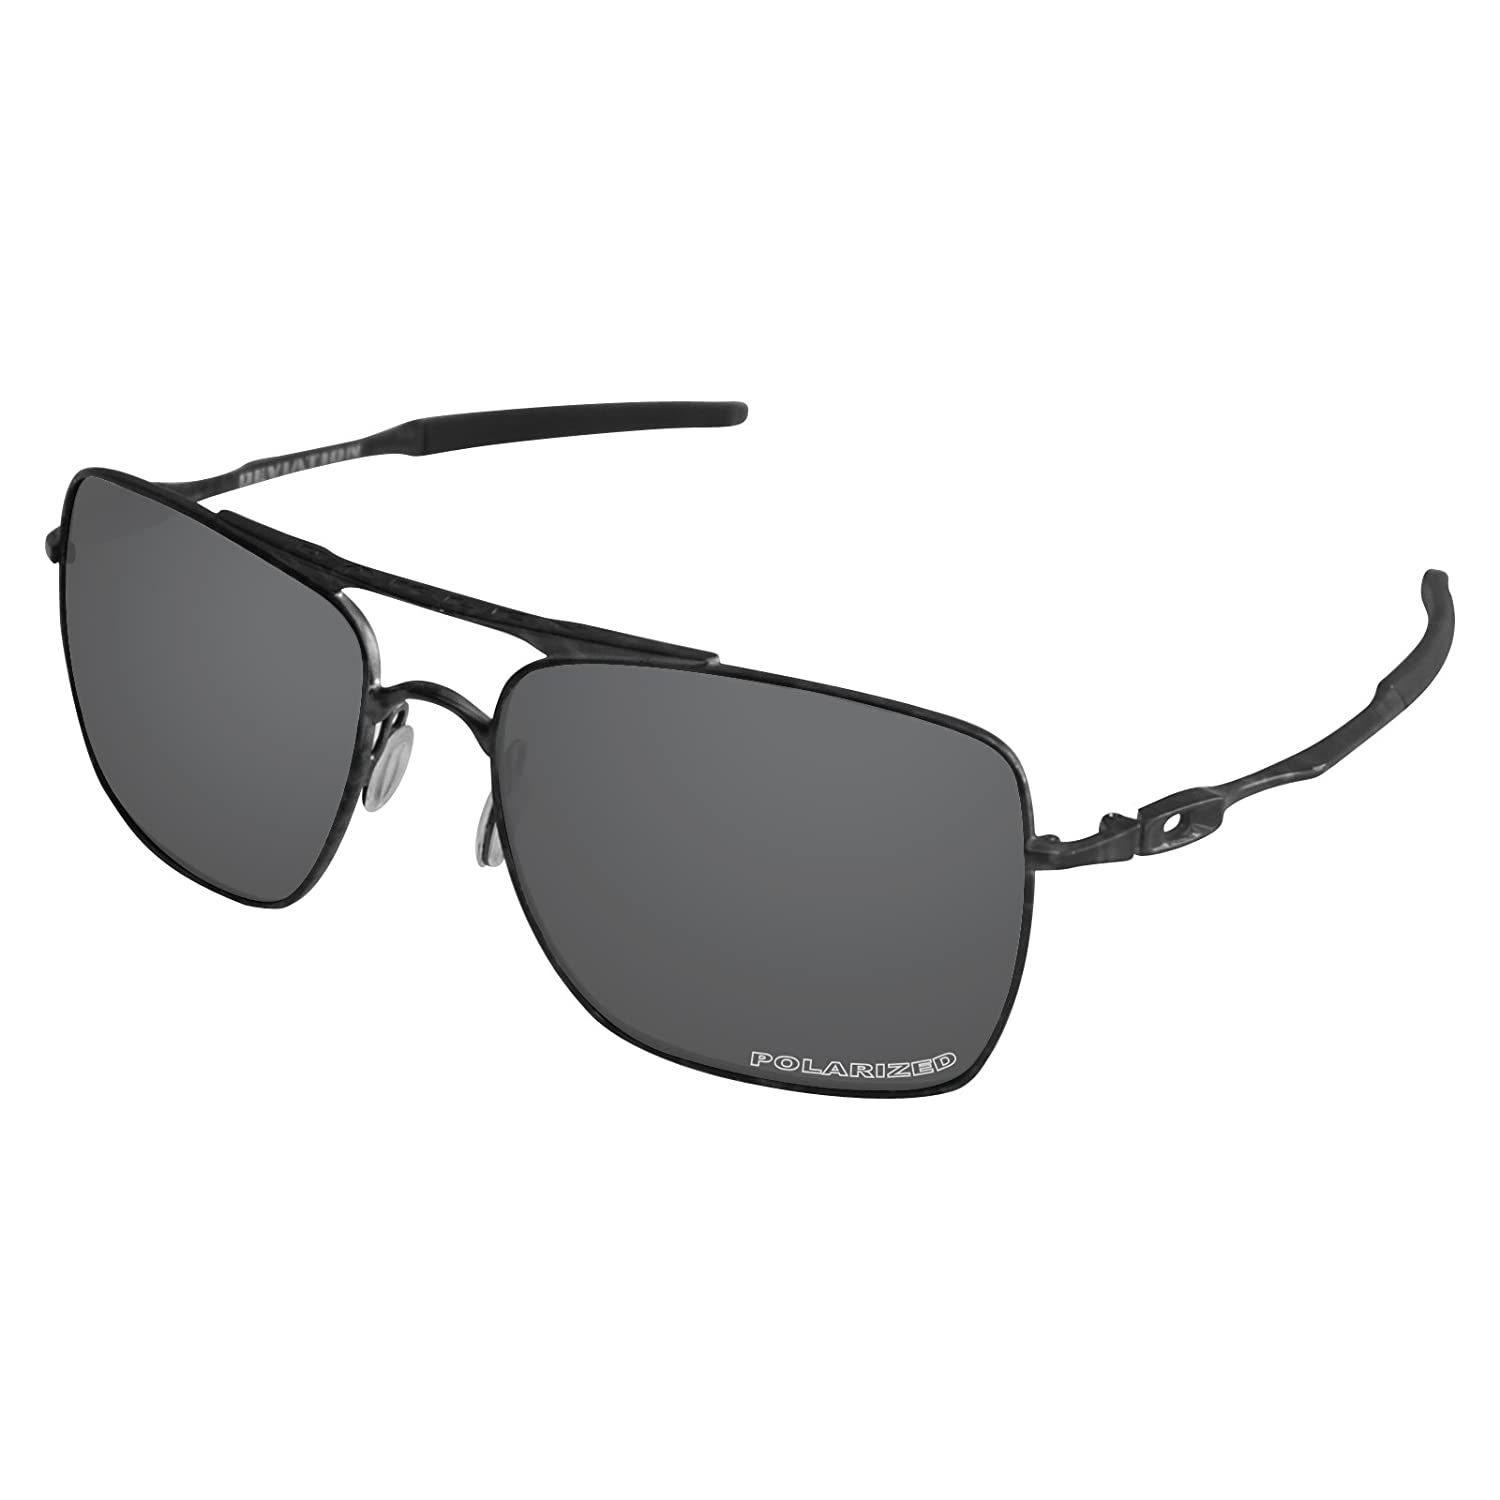 19ddbcf612 Amazon.com  Tintart Performance Lenses Compatible with Oakley Deviation  Polarized Etched-Carbon Black  Clothing